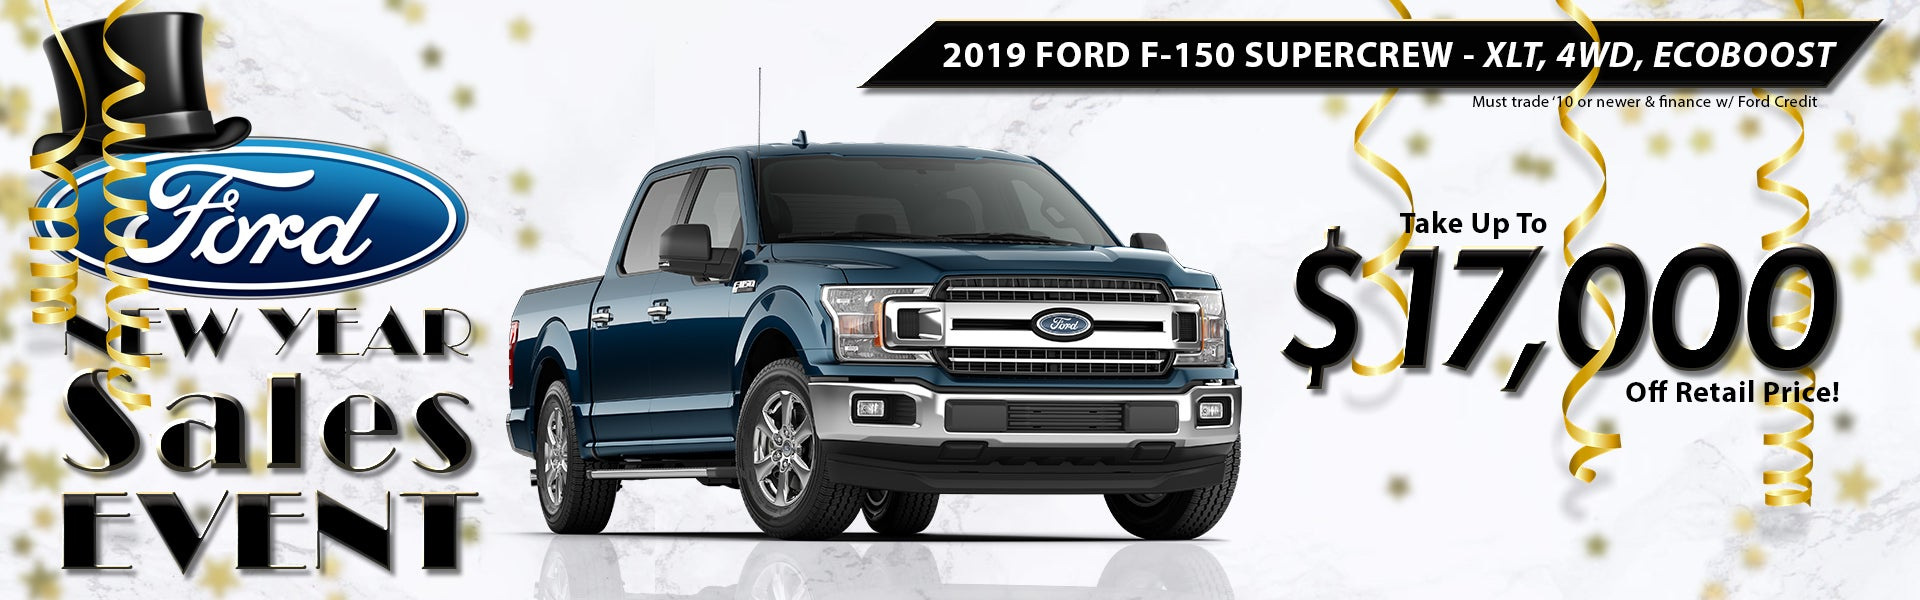 Raleigh Car Dealerships >> Ford Dealer In Apex Nc Used Cars Apex Crossroads Ford